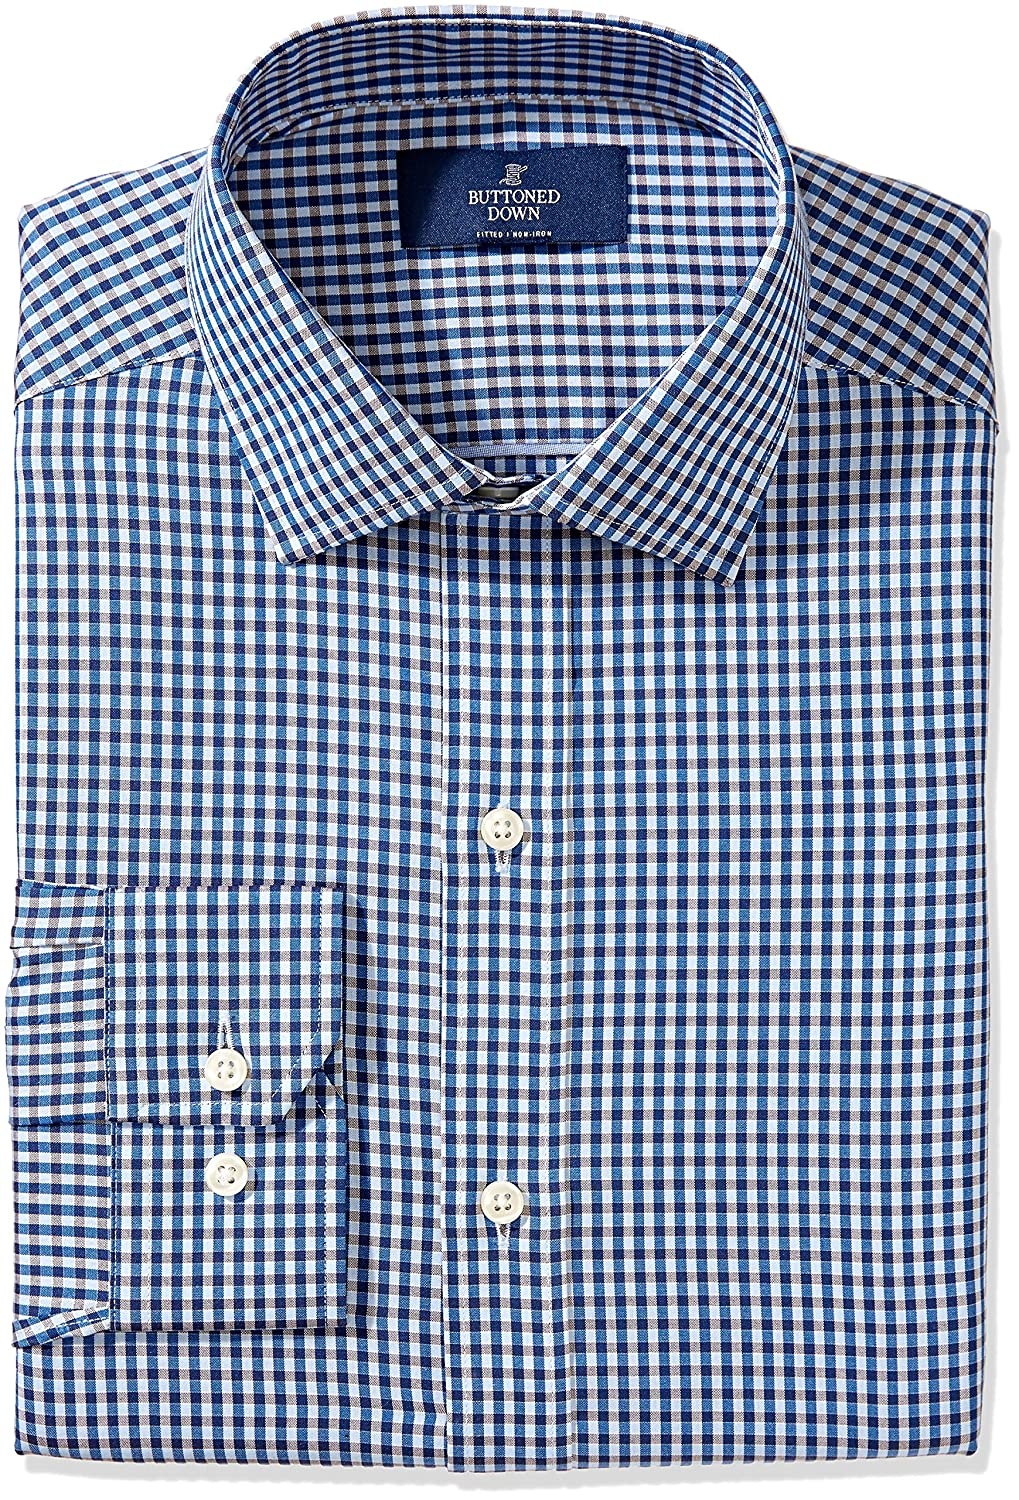 091c311fdfcf Amazon.com  Amazon Brand - BUTTONED DOWN Men s Fitted Pattern Non-Iron Dress  Shirt (3 Collars Available)  Clothing